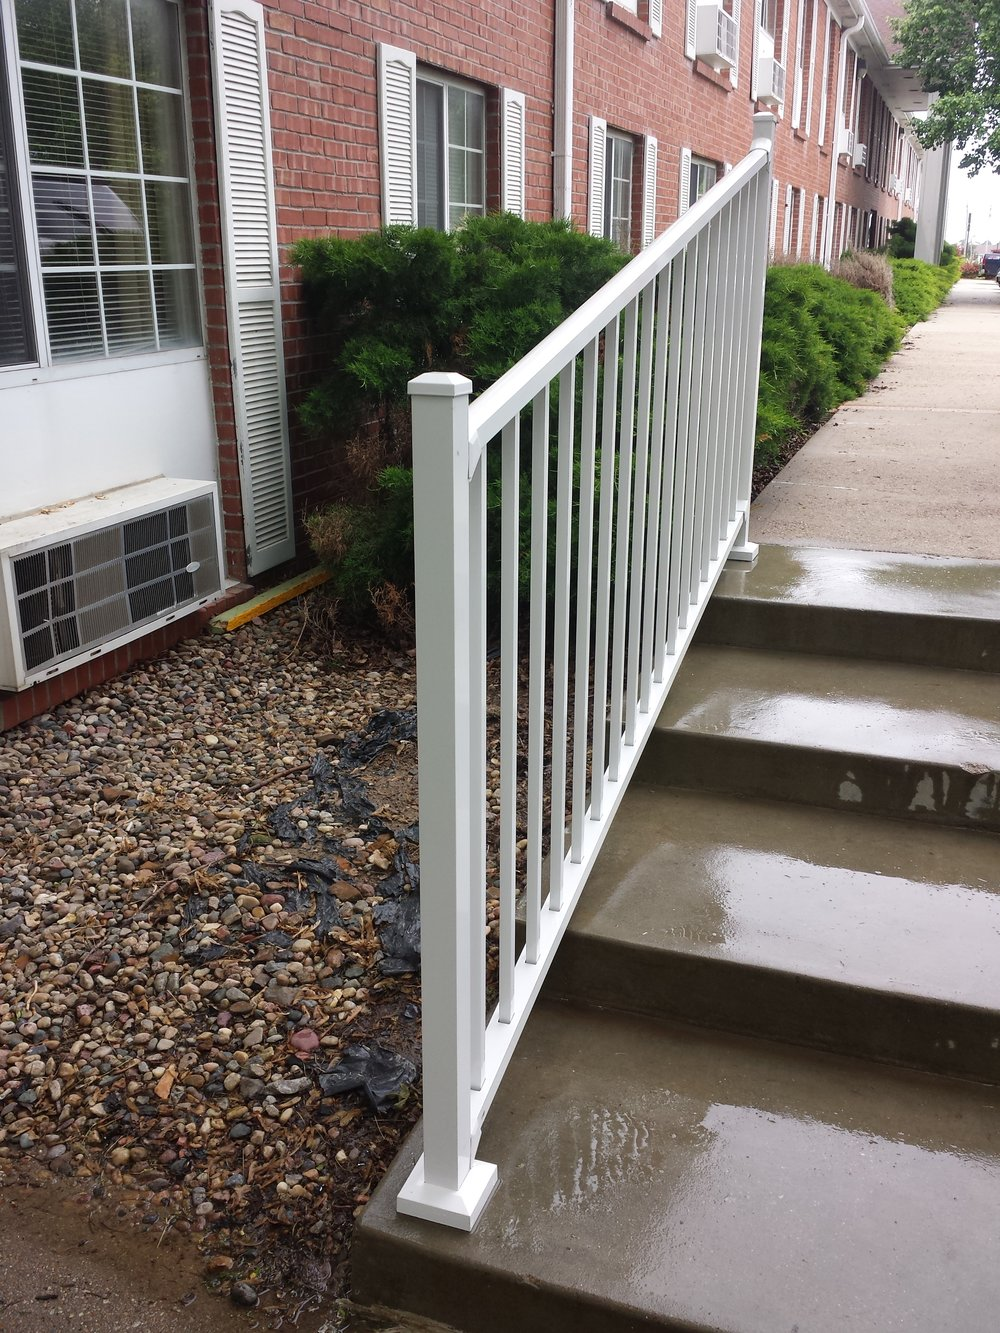 Newly installed handrail on steps